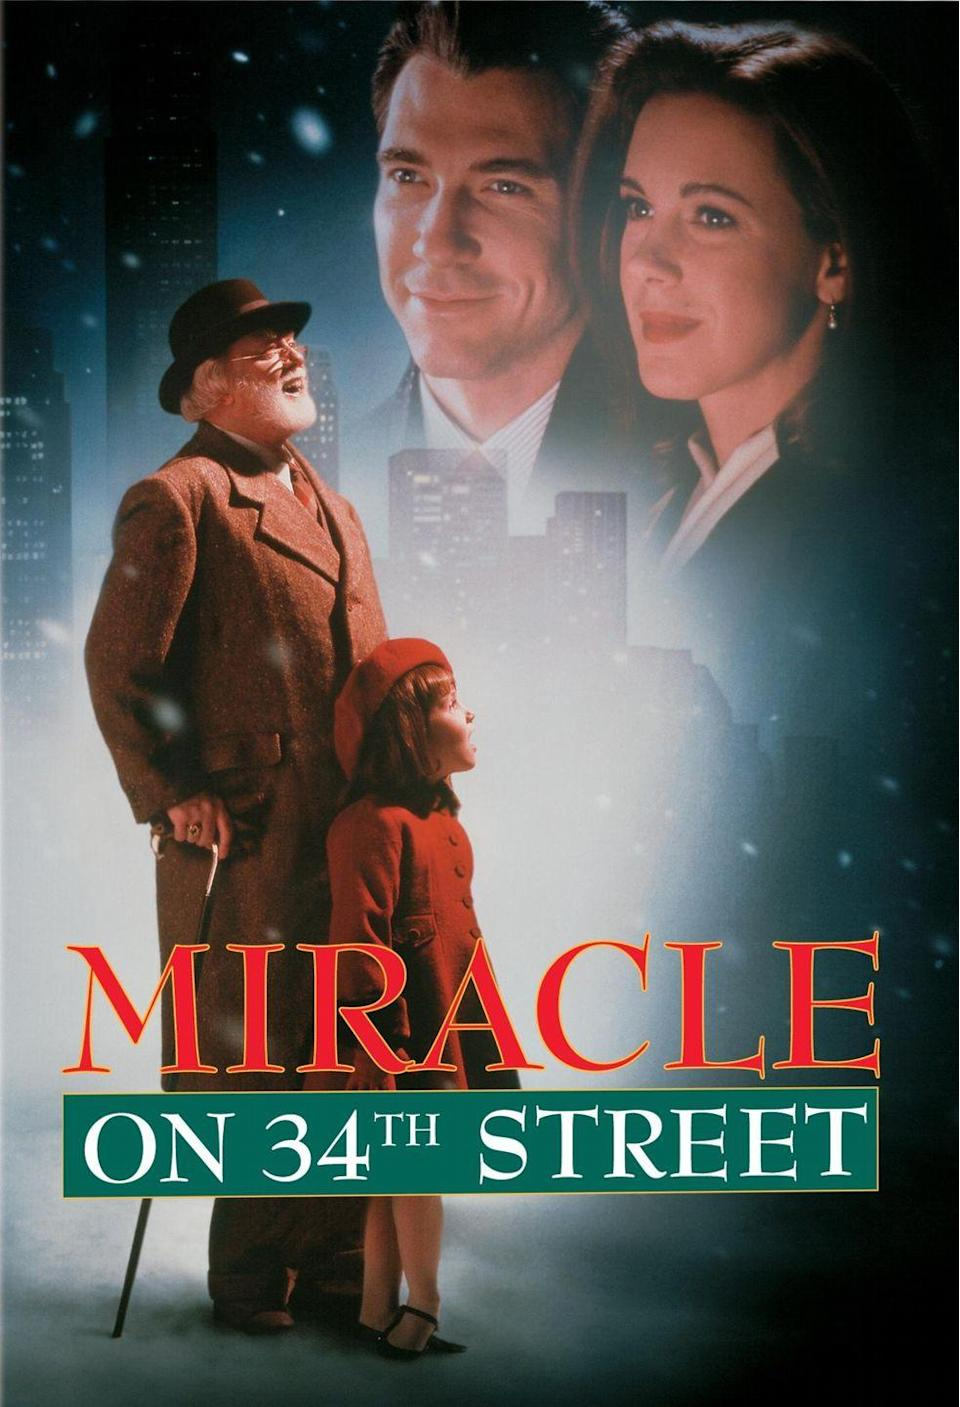 """<p>This 1994 version of the classic film, starring Richard Attenborough as Kris Kringle, is an excellent reimagining of the 1947 original.</p><p><a class=""""link rapid-noclick-resp"""" href=""""https://www.amazon.com/Miracle-34th-Street-Richard-Attenborough/dp/B000SW16LC/?tag=syn-yahoo-20&ascsubtag=%5Bartid%7C10055.g.1315%5Bsrc%7Cyahoo-us"""" rel=""""nofollow noopener"""" target=""""_blank"""" data-ylk=""""slk:WATCH NOW"""">WATCH NOW</a></p>"""